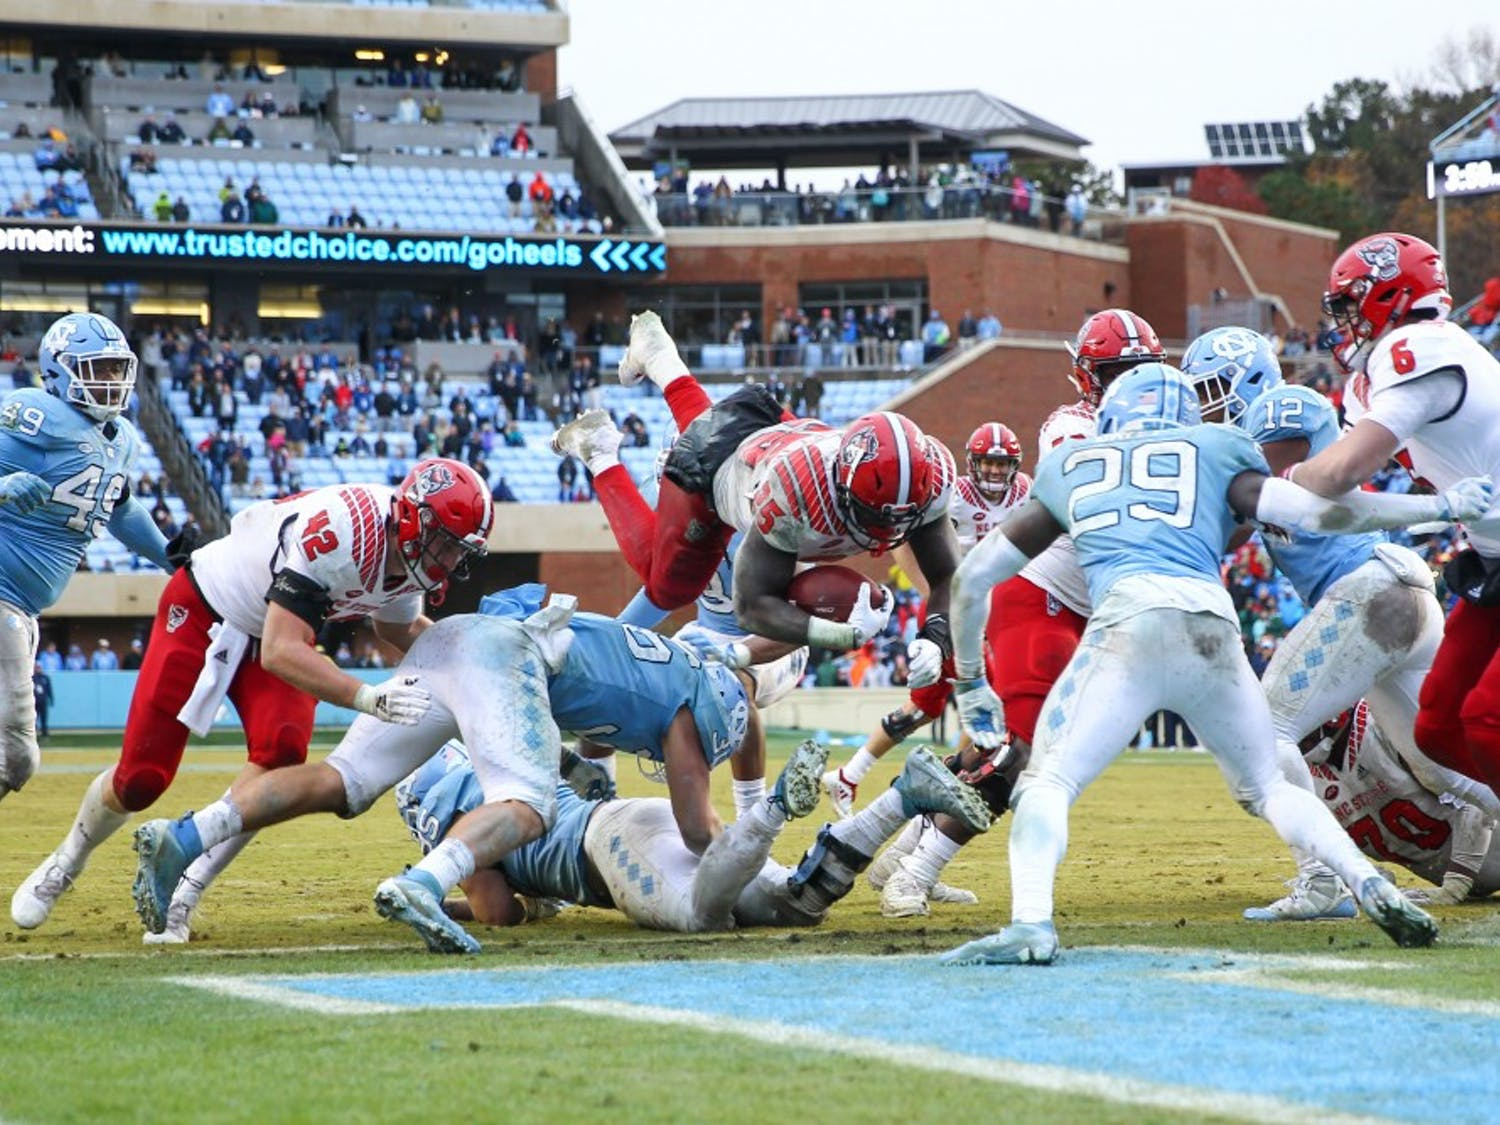 NC State's Reggie Gallaspy II (25) leaps for the game winning touchdown in overtime on Saturday, Nov. 24, 2018 in Kenan Memorial Stadium. NC State beat UNC 34-28 in overtime.